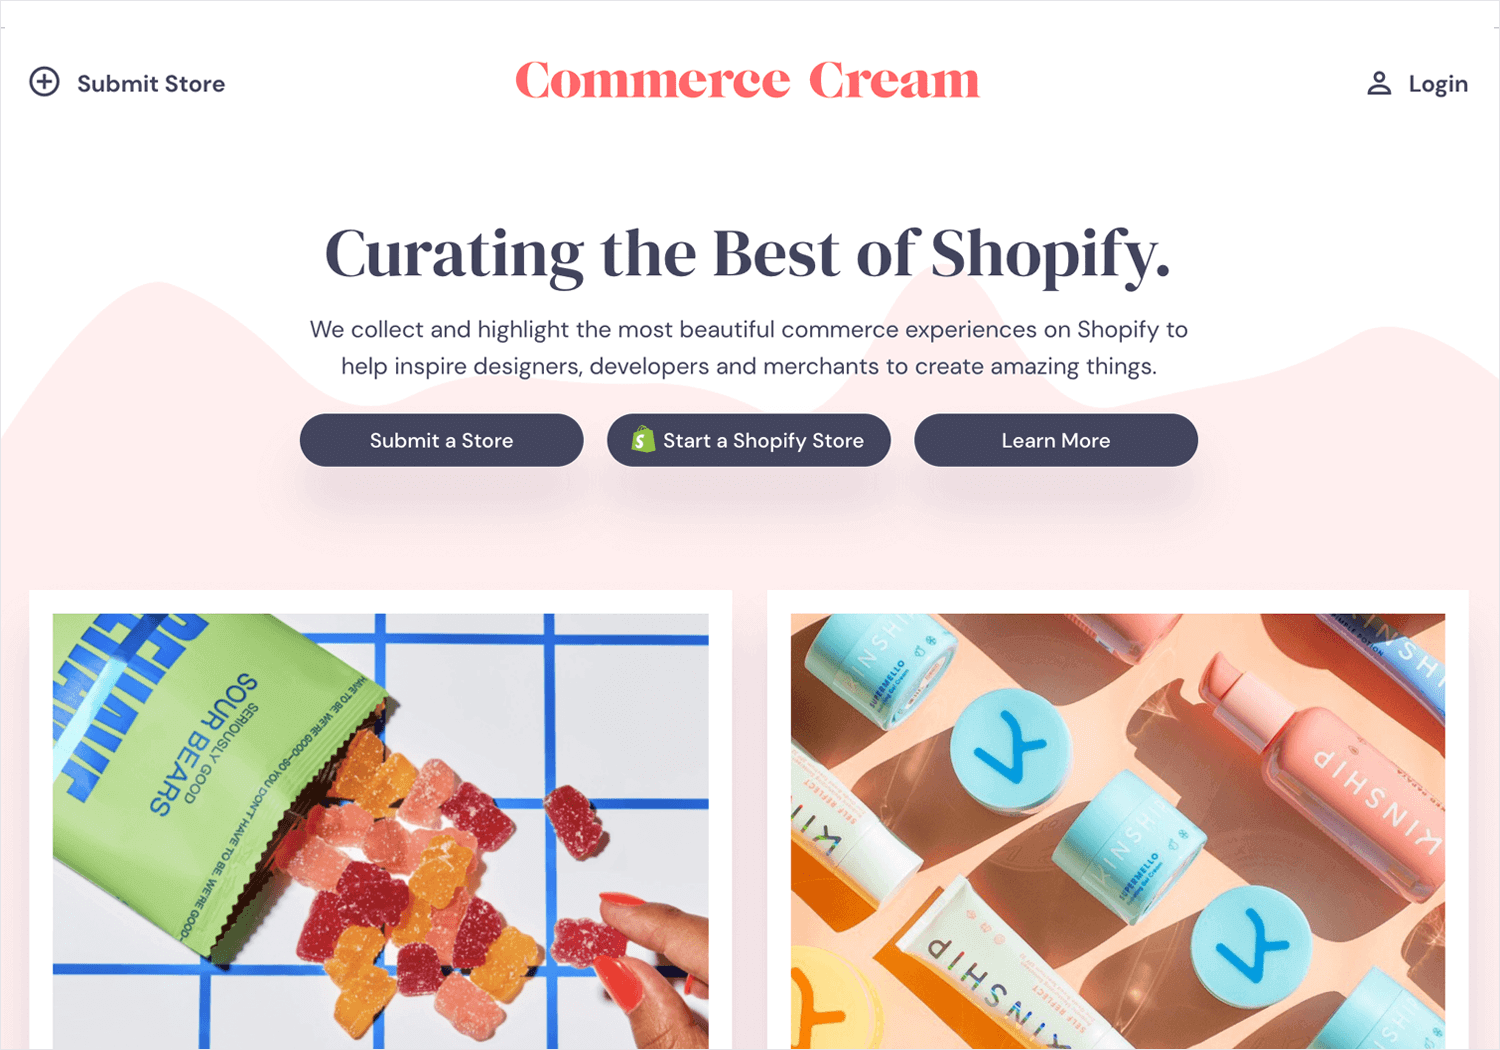 ecommerce cream as place for web design inspiration